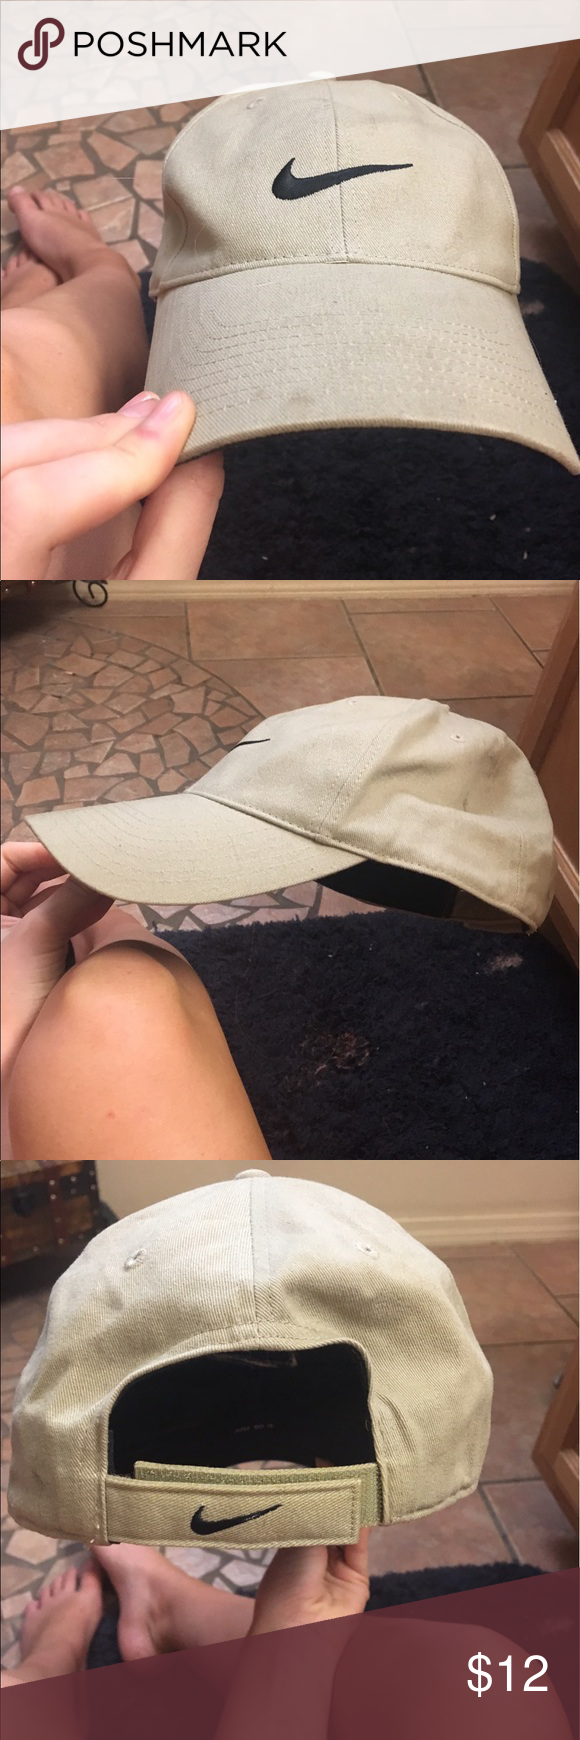 467075e1 Nike hat Nude Nike hat beige or tan or nude color Nike symbol in front and  back Velcro SnapBack baseball style Nike Accessories Hats